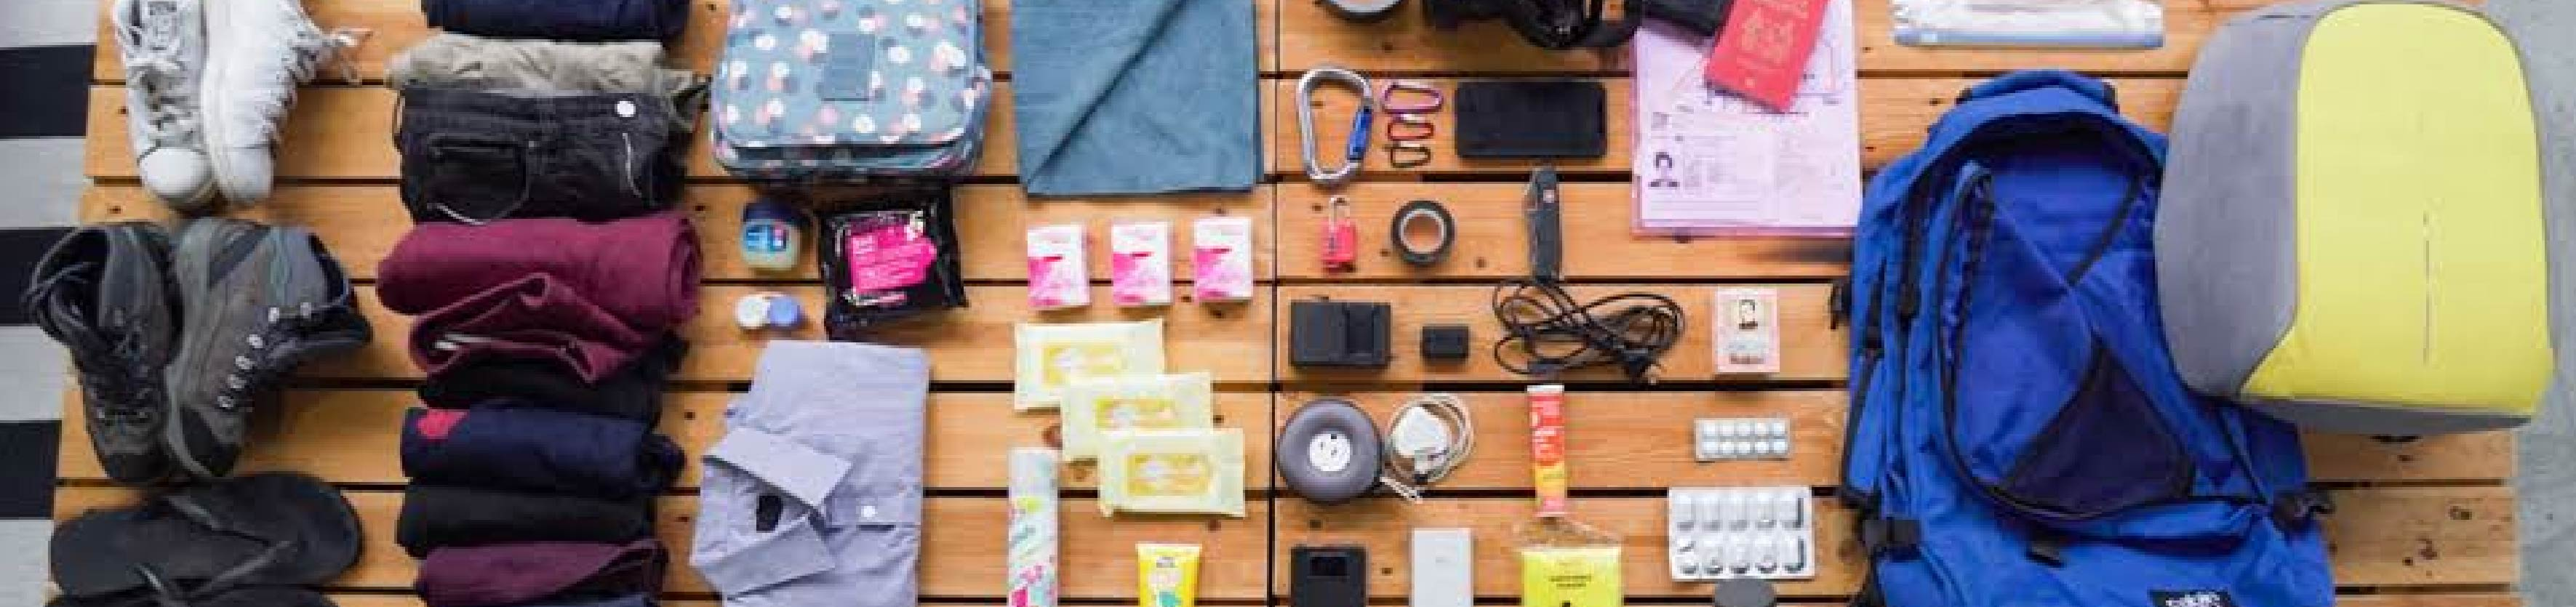 Packing for travel: How to do it in the smartest way?